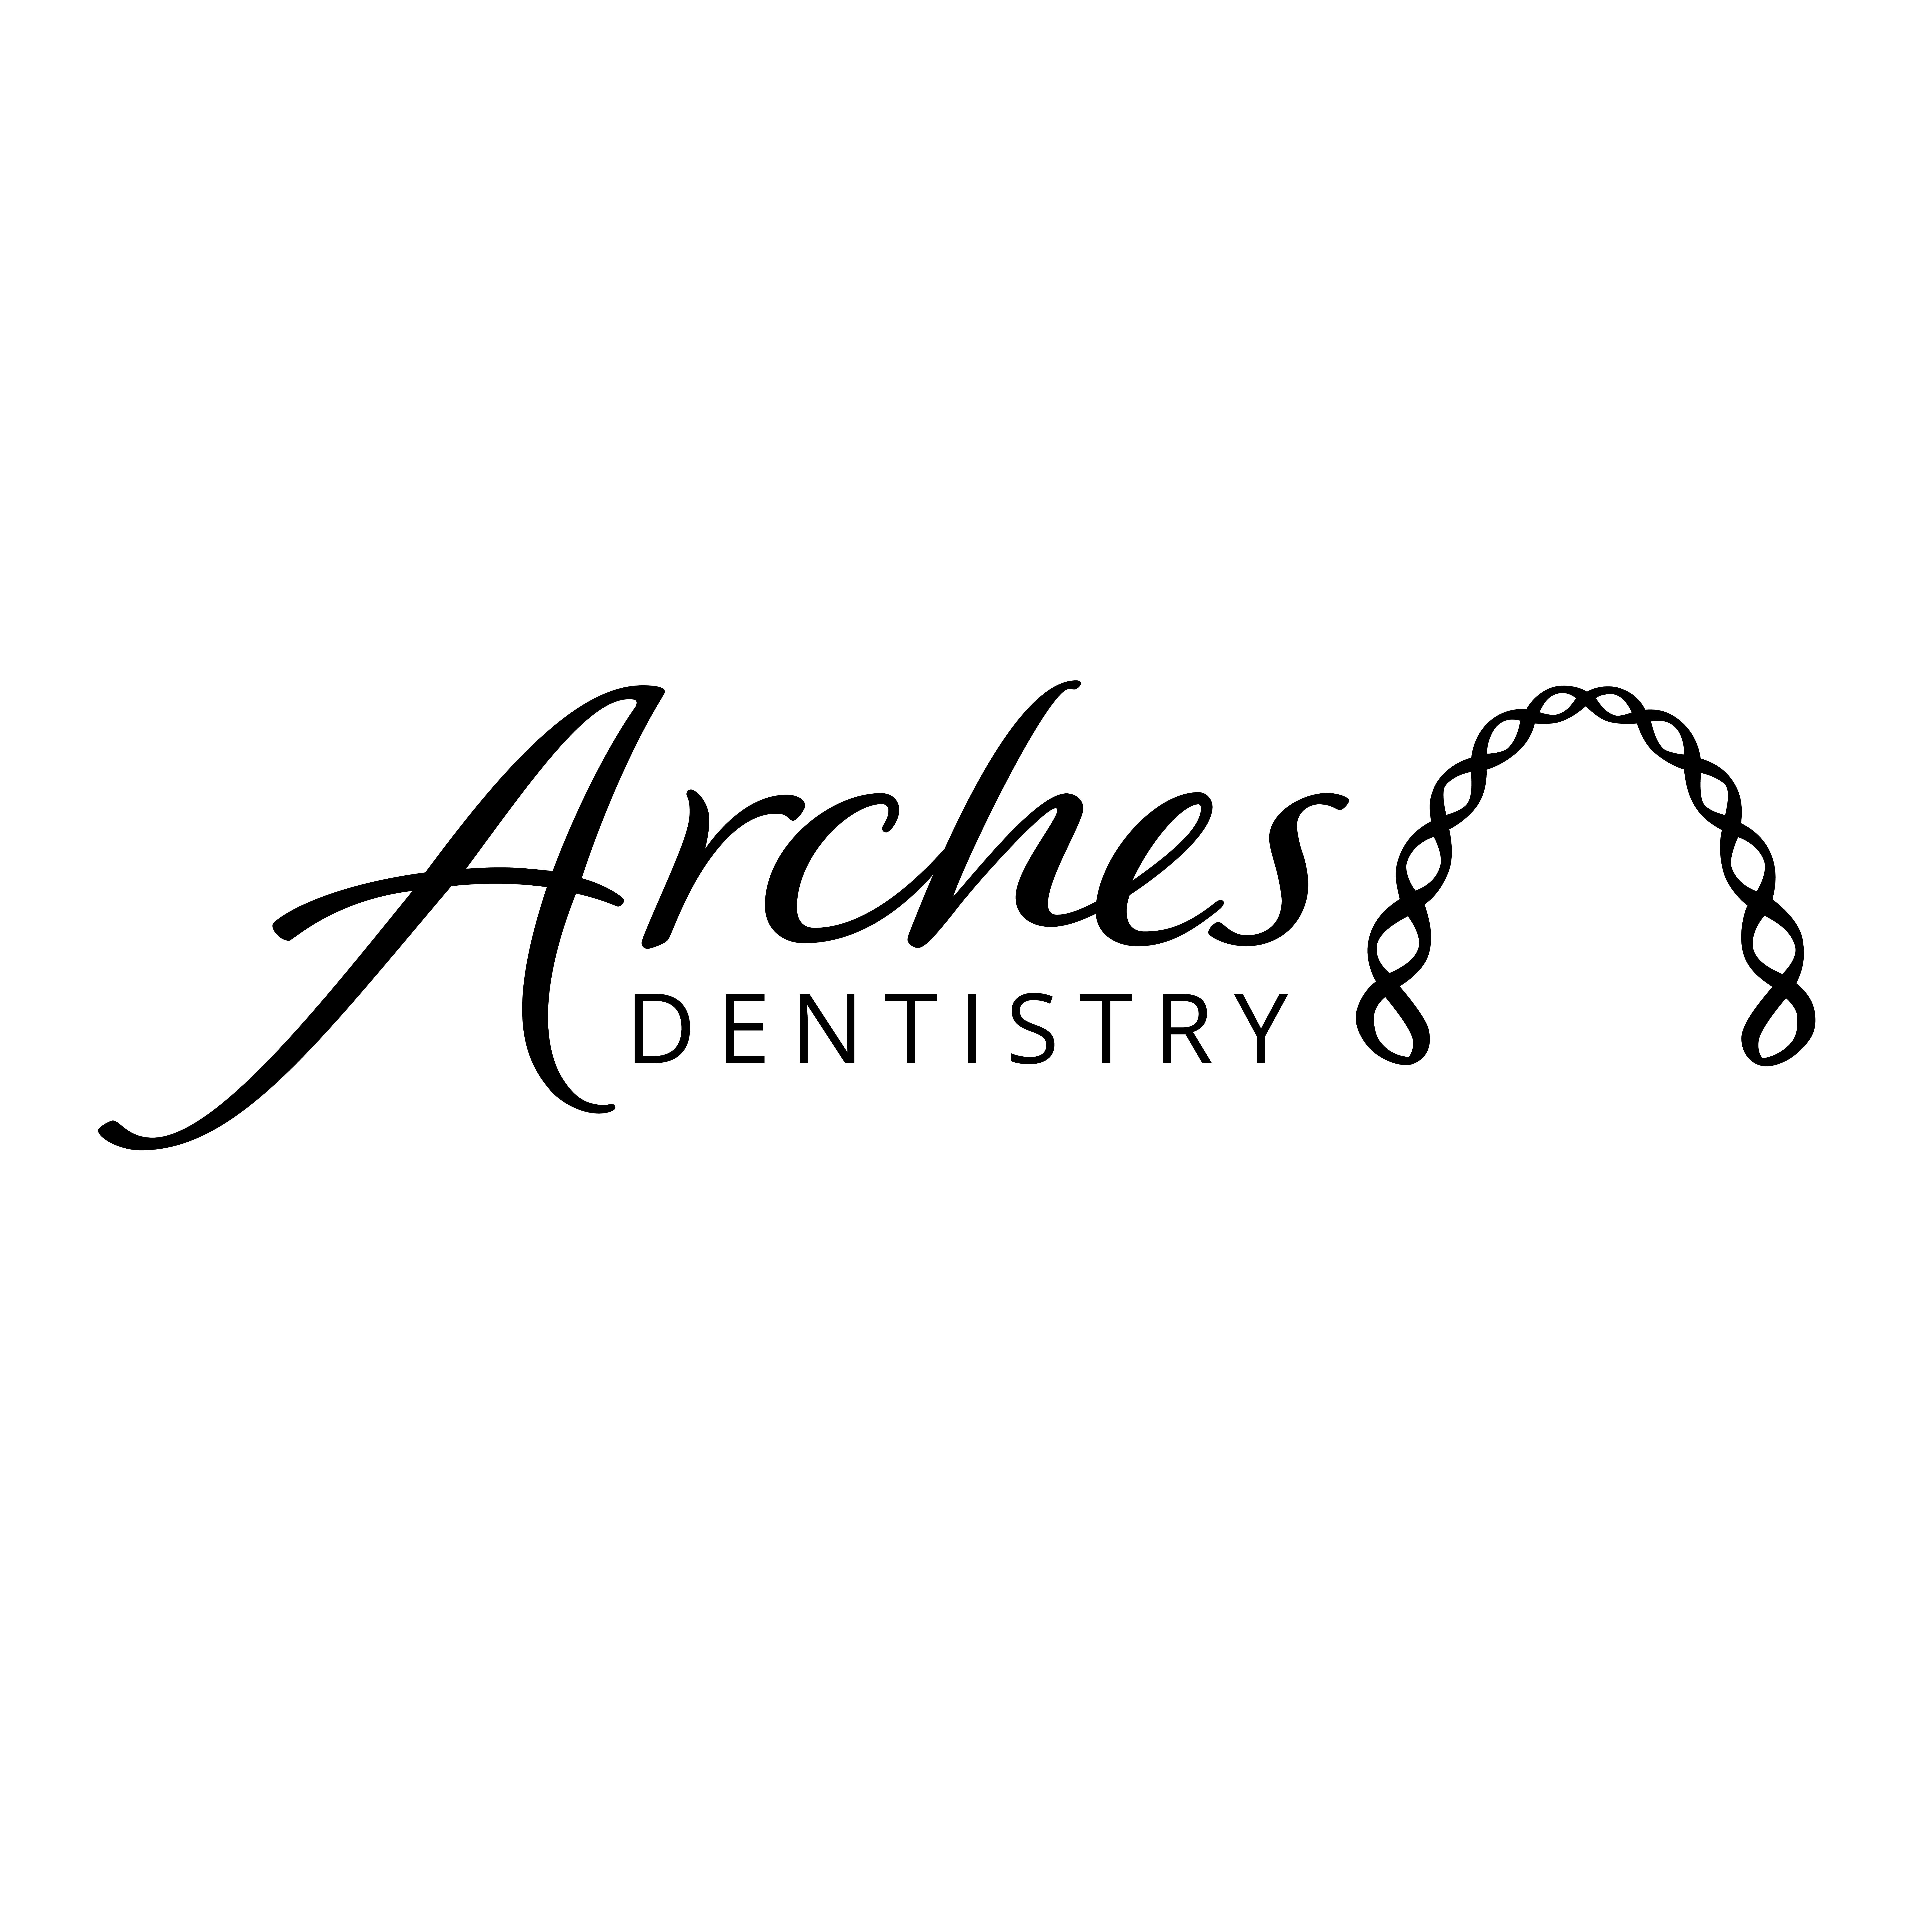 Arches Dentistry